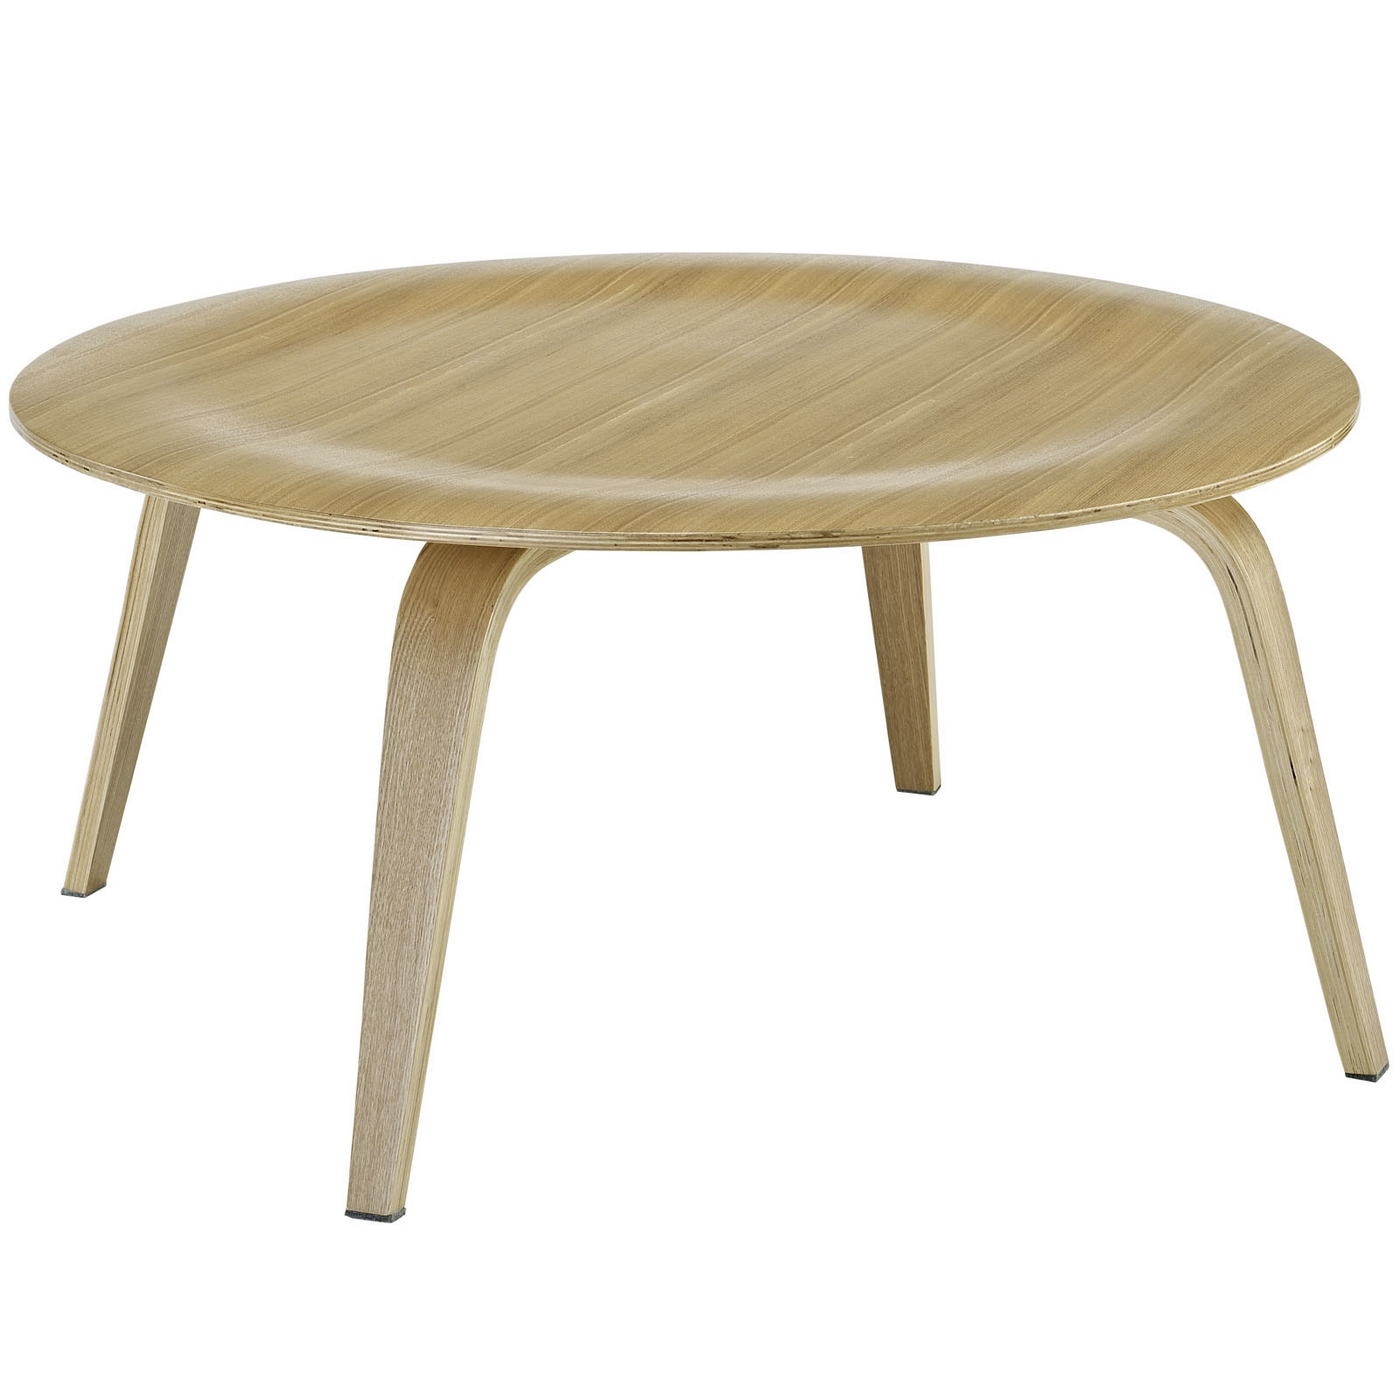 Plywood modern wood grain panel round coffee table natural for Modern wooden coffee tables